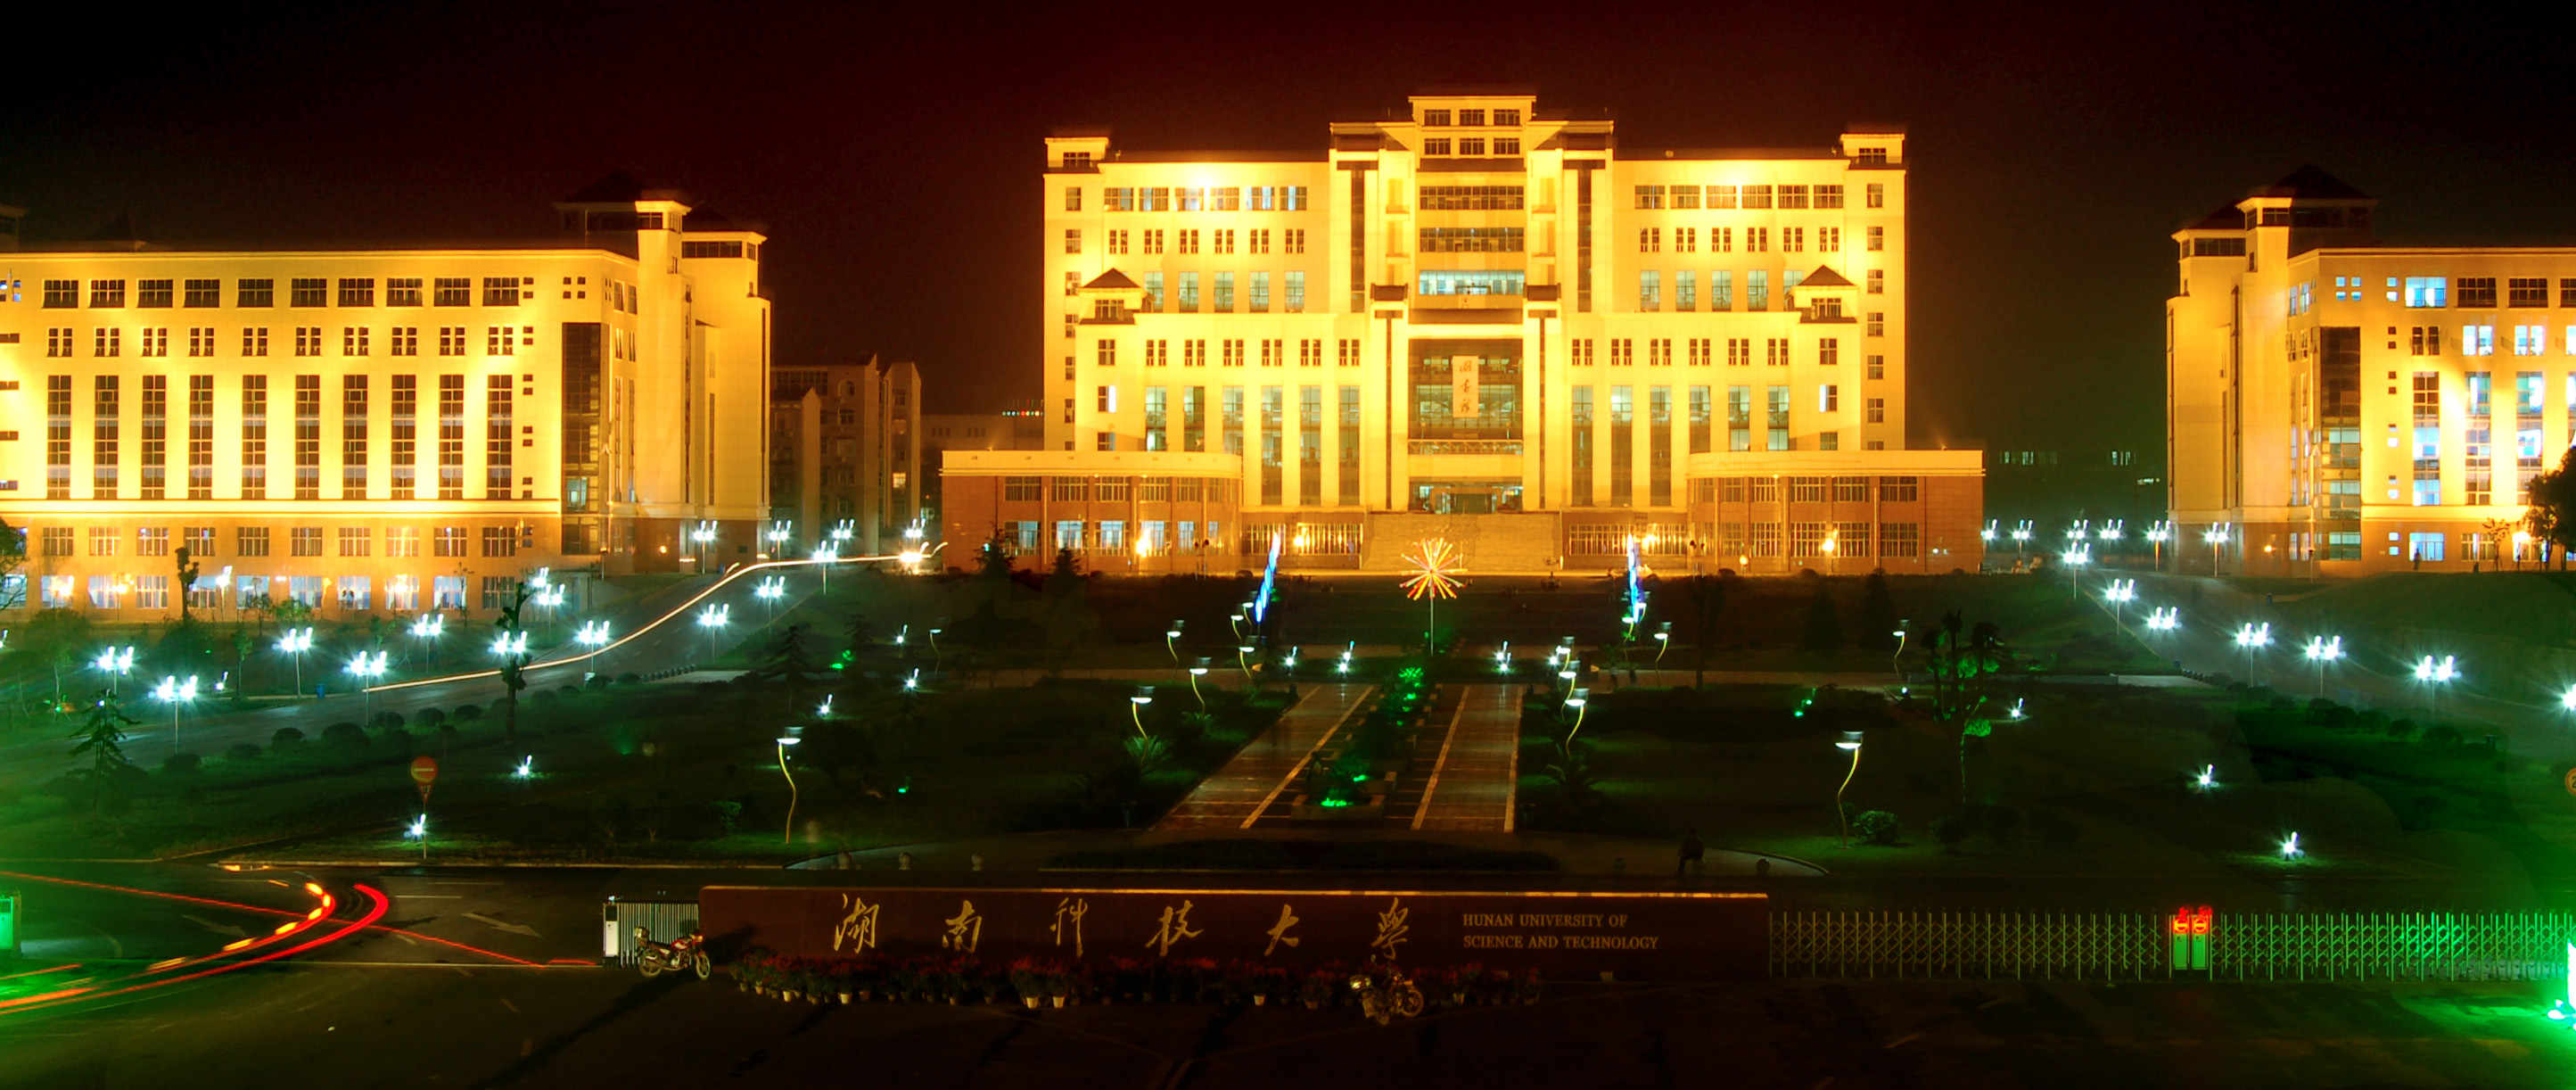 Hunan-University-of-Science-and-Technology-nocturne